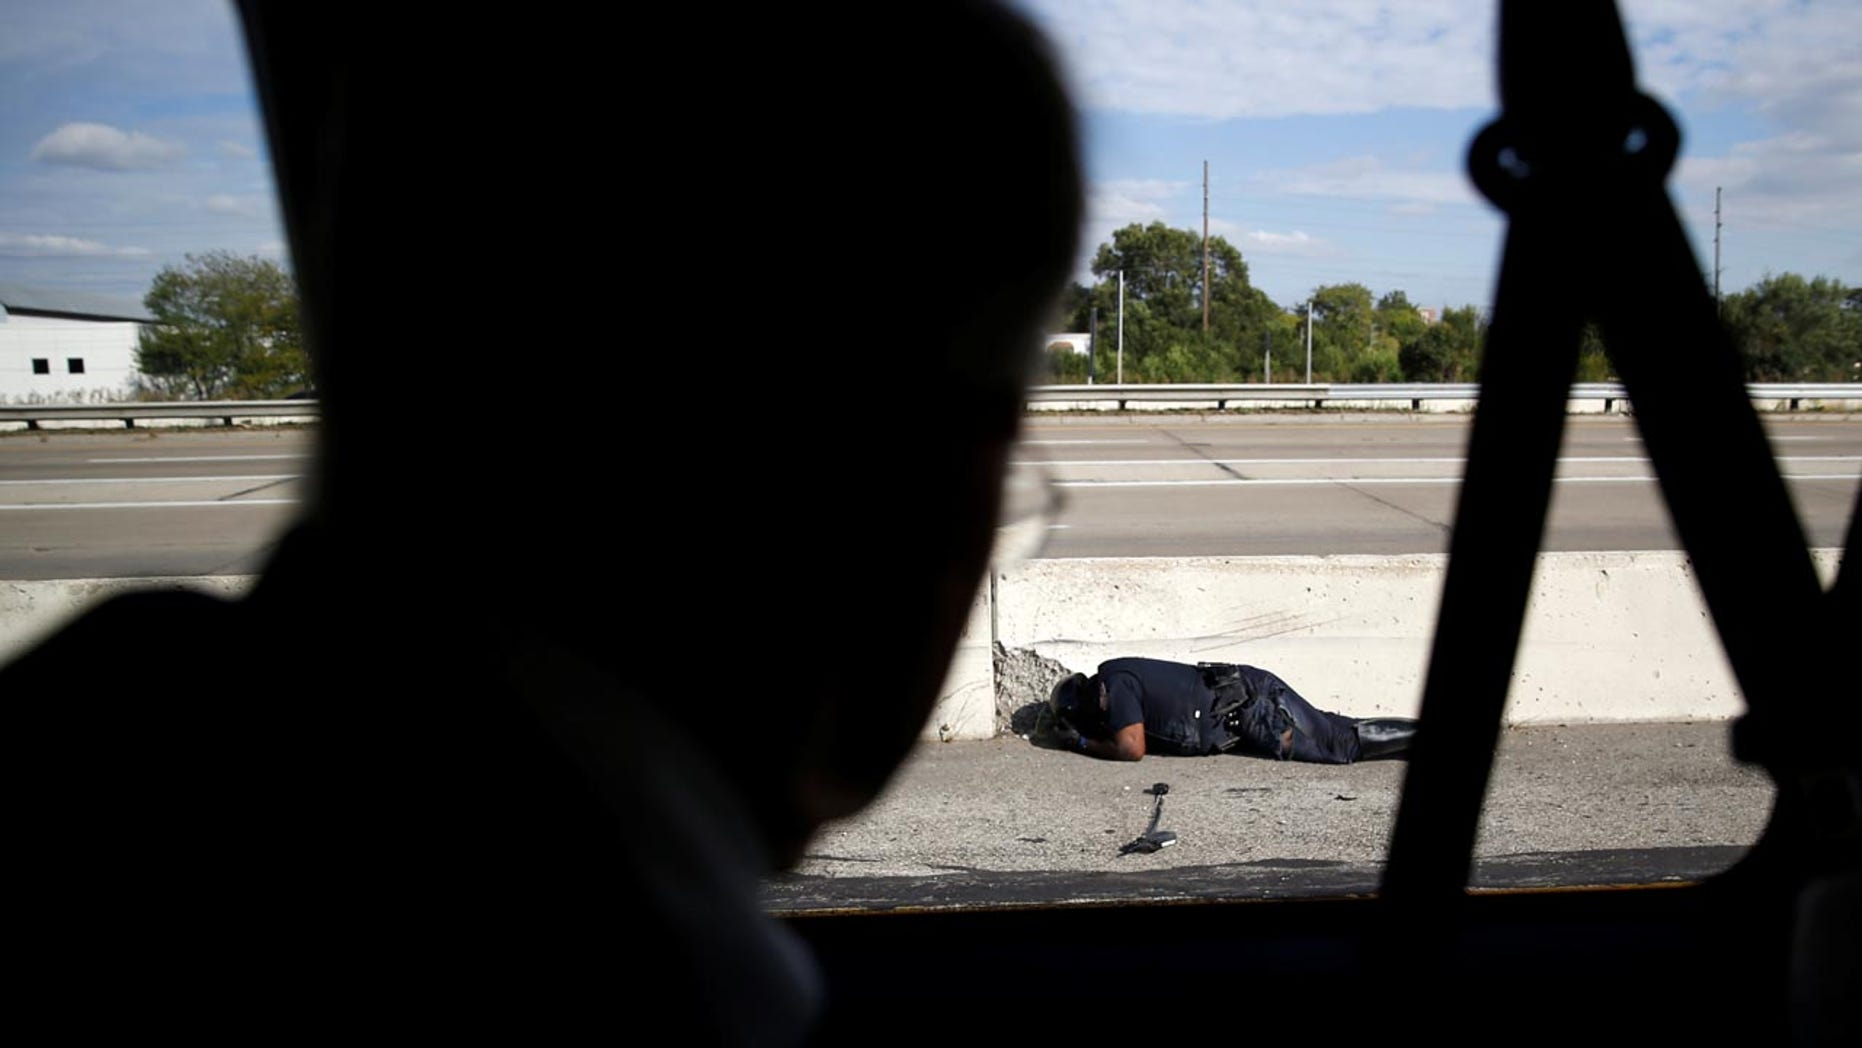 A police officer involved in an accident lies on the ground as President Trump's motorcade travels past him in Indianapolis, Sept. 27, 2017.